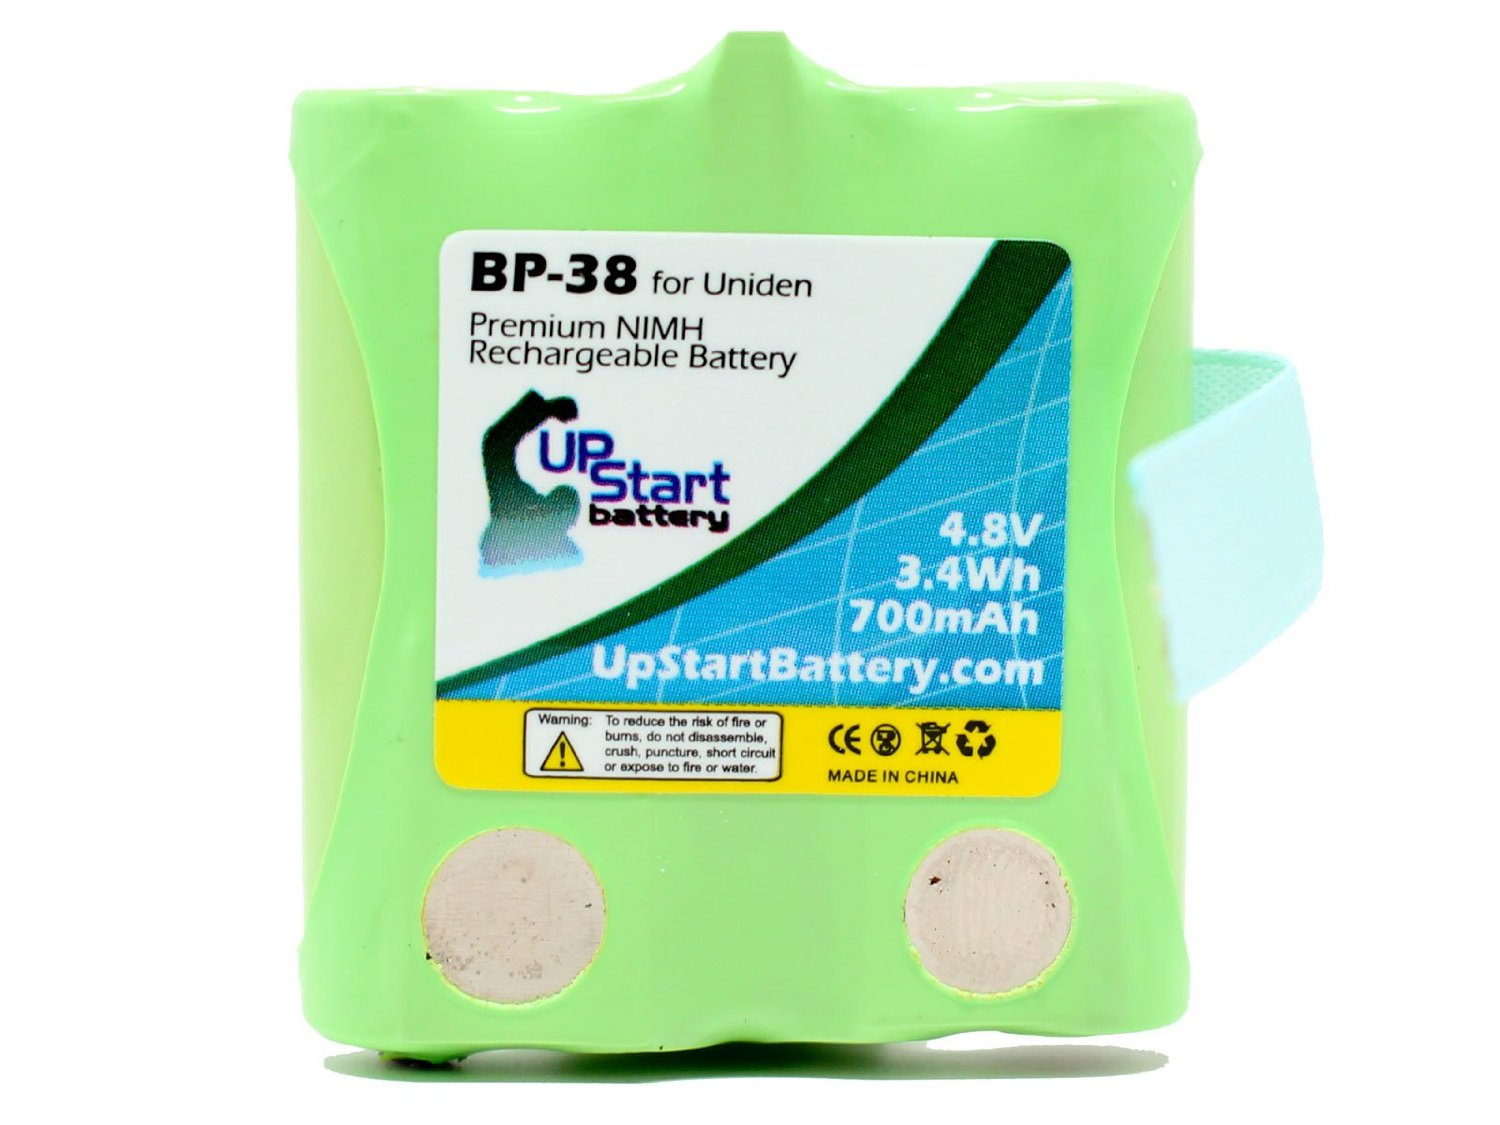 BP-38 Battery for Uniden BP-40, GMRS/FRS Two-Way Radios (700mAh, 4.8V, NI-MH) - Compatible with GMR1838, GMRS, GMR1038-2, GMR, GMR648-2CK, GMR1048-2CK, GMR1038, GMR3699, GMR3689, GMR2889-2CK, GMR1588-2CK, GMR1558-2CK, GMR1038-2CK, GMR2238, GMR885, GMR855-2CK, GMR638, GMR635, BP-38, BP40, BP38,